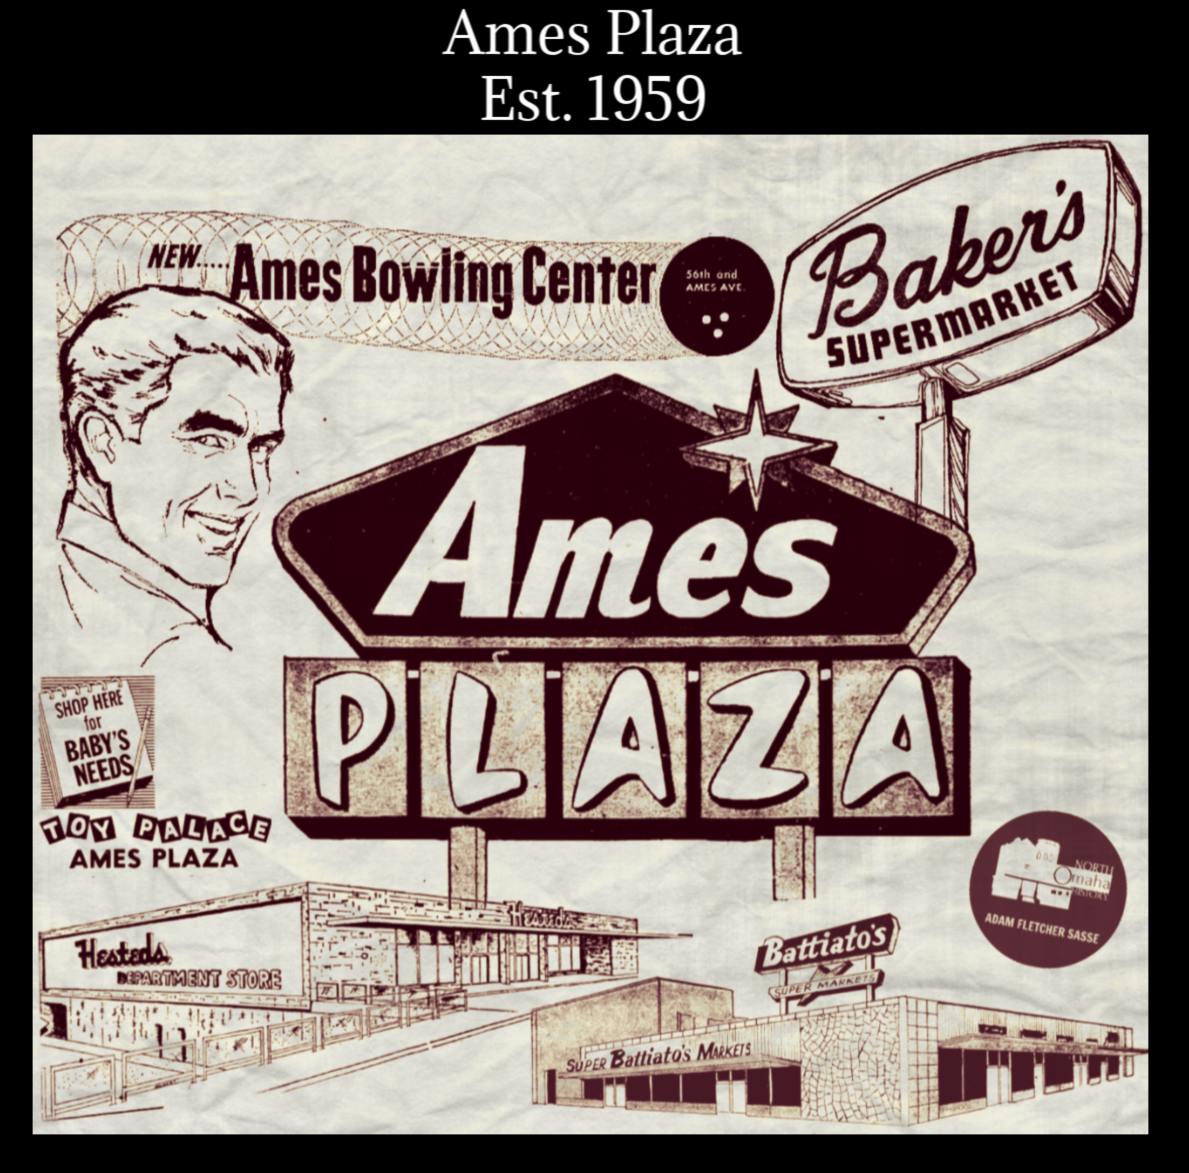 Ames Plaza, North Omaha, Nebraska